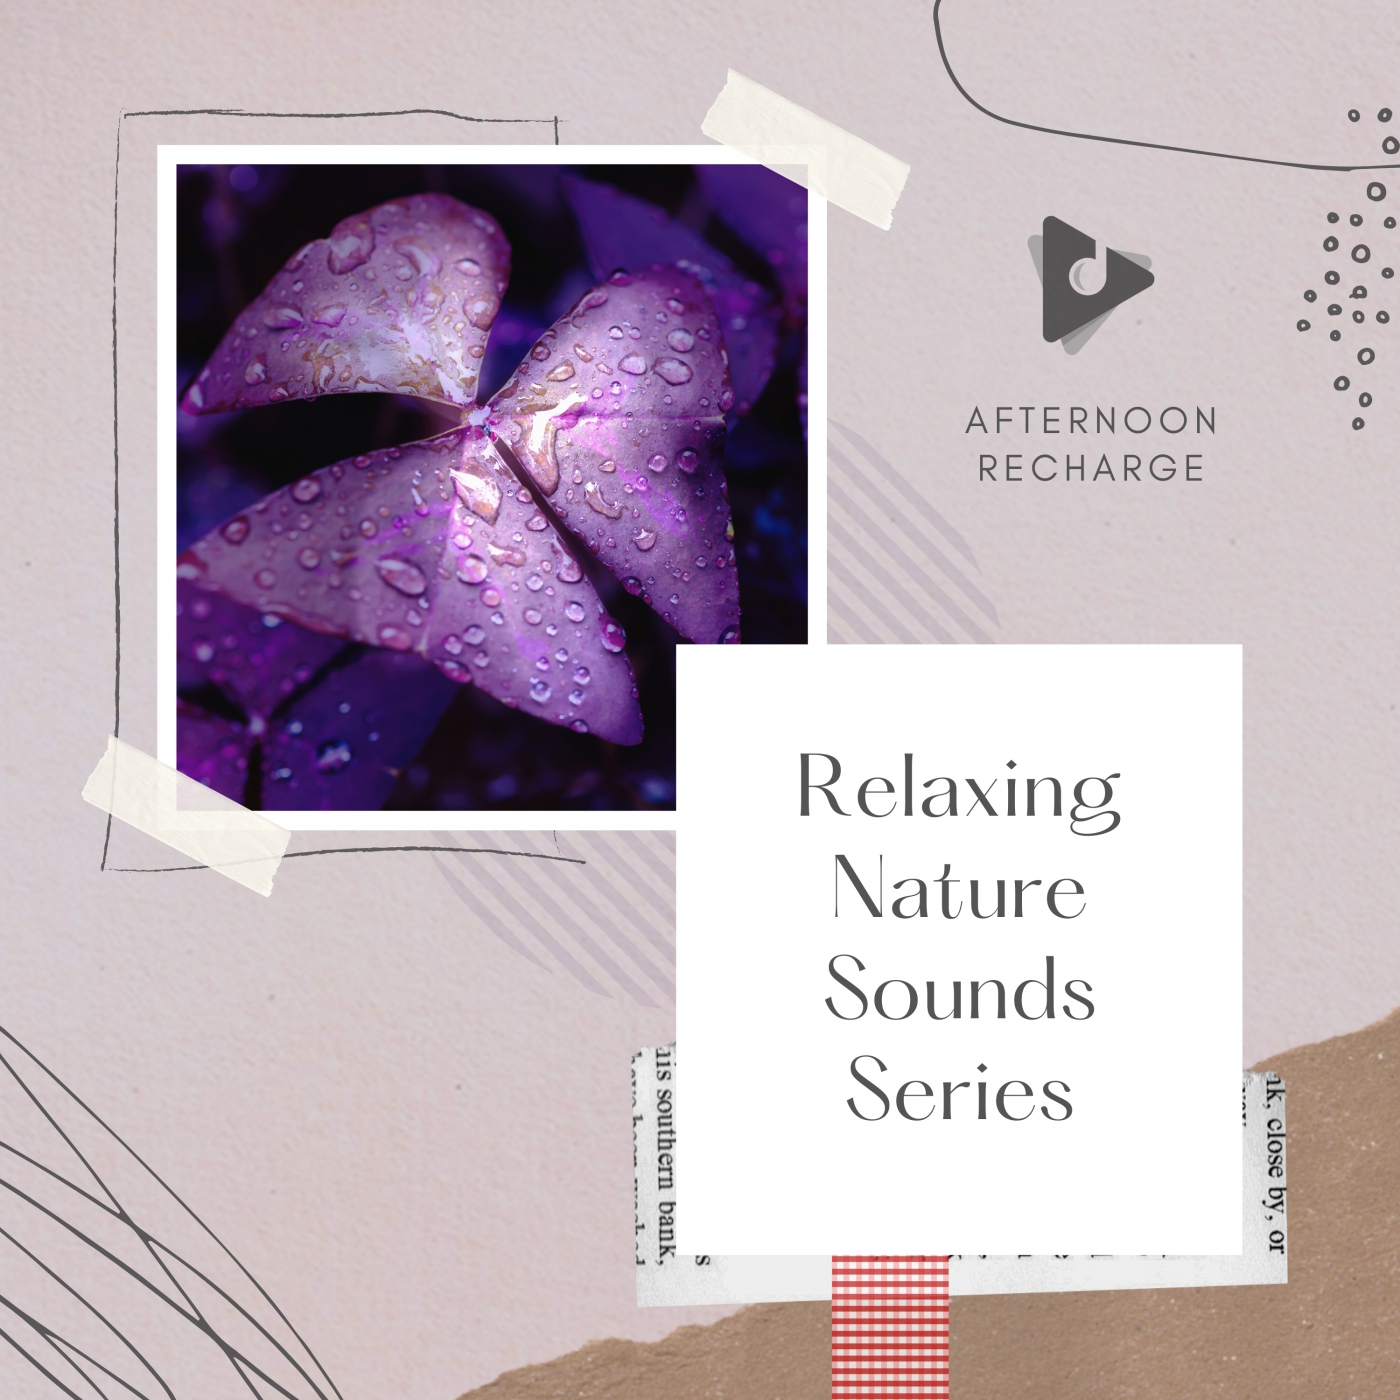 Relaxing Nature Sounds Series